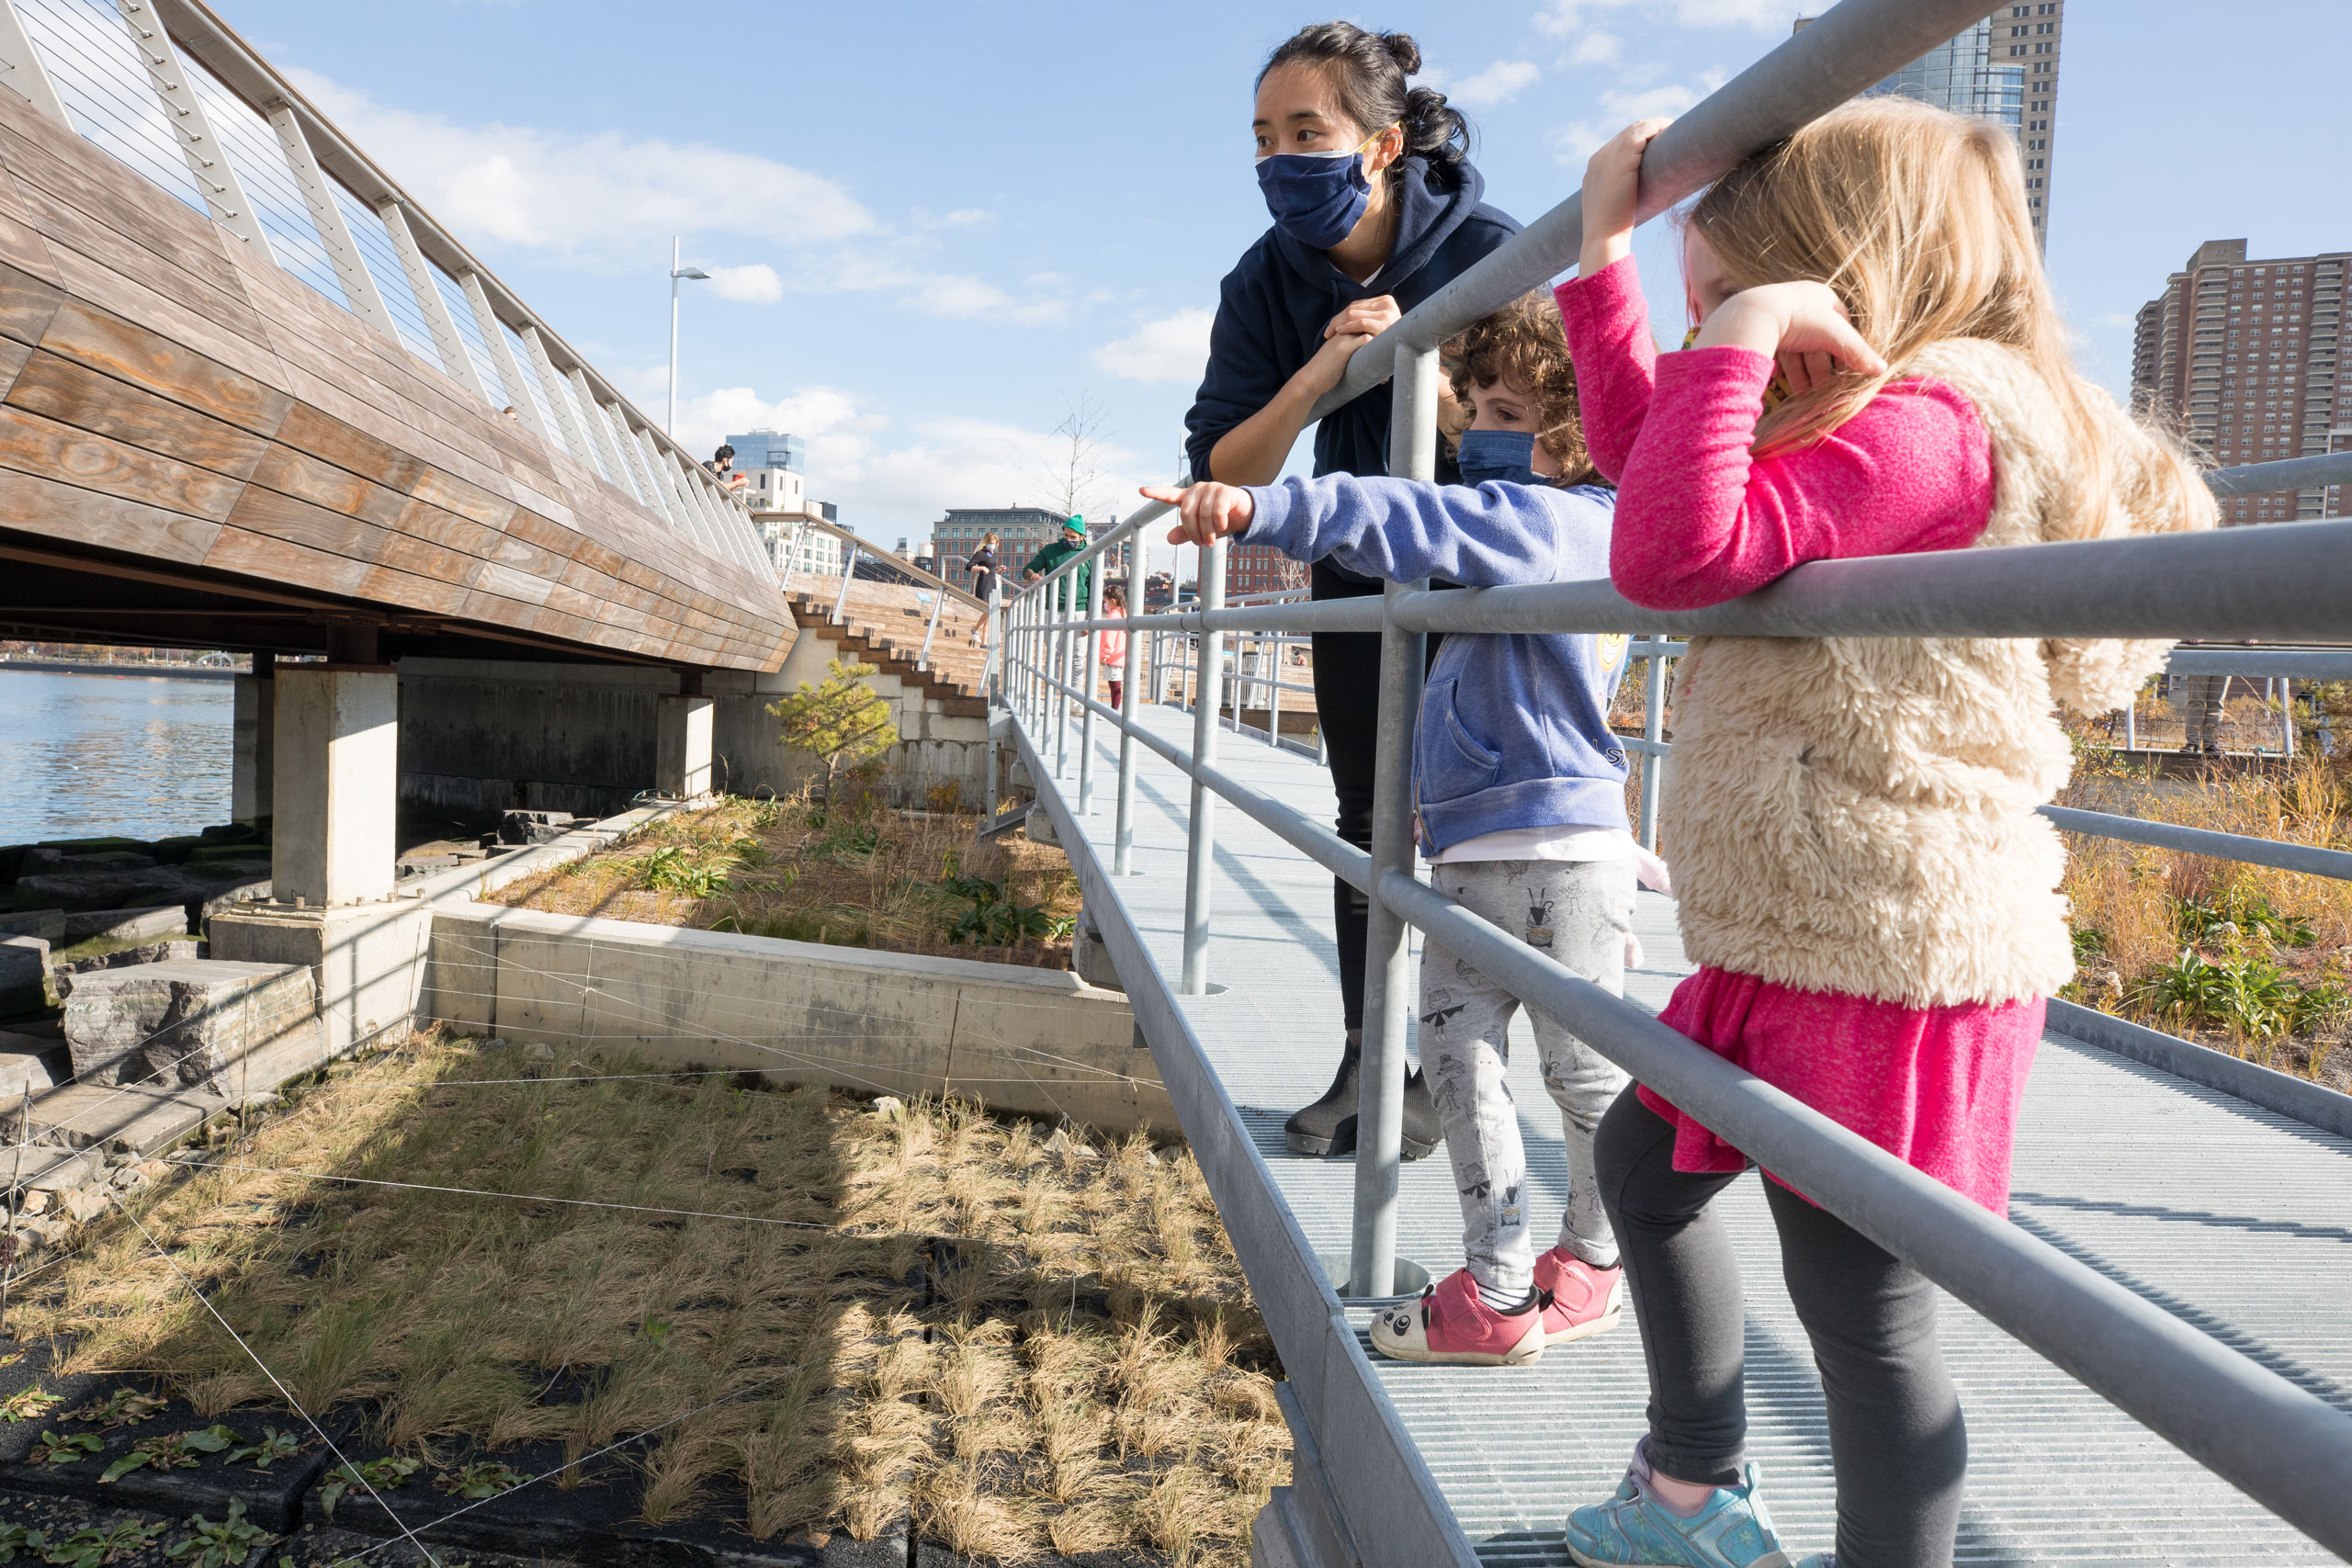 HRPK River Project Park educators point out to young students the native wildlife and ecology of the Hudson River from the Pier 26 Tide Deck